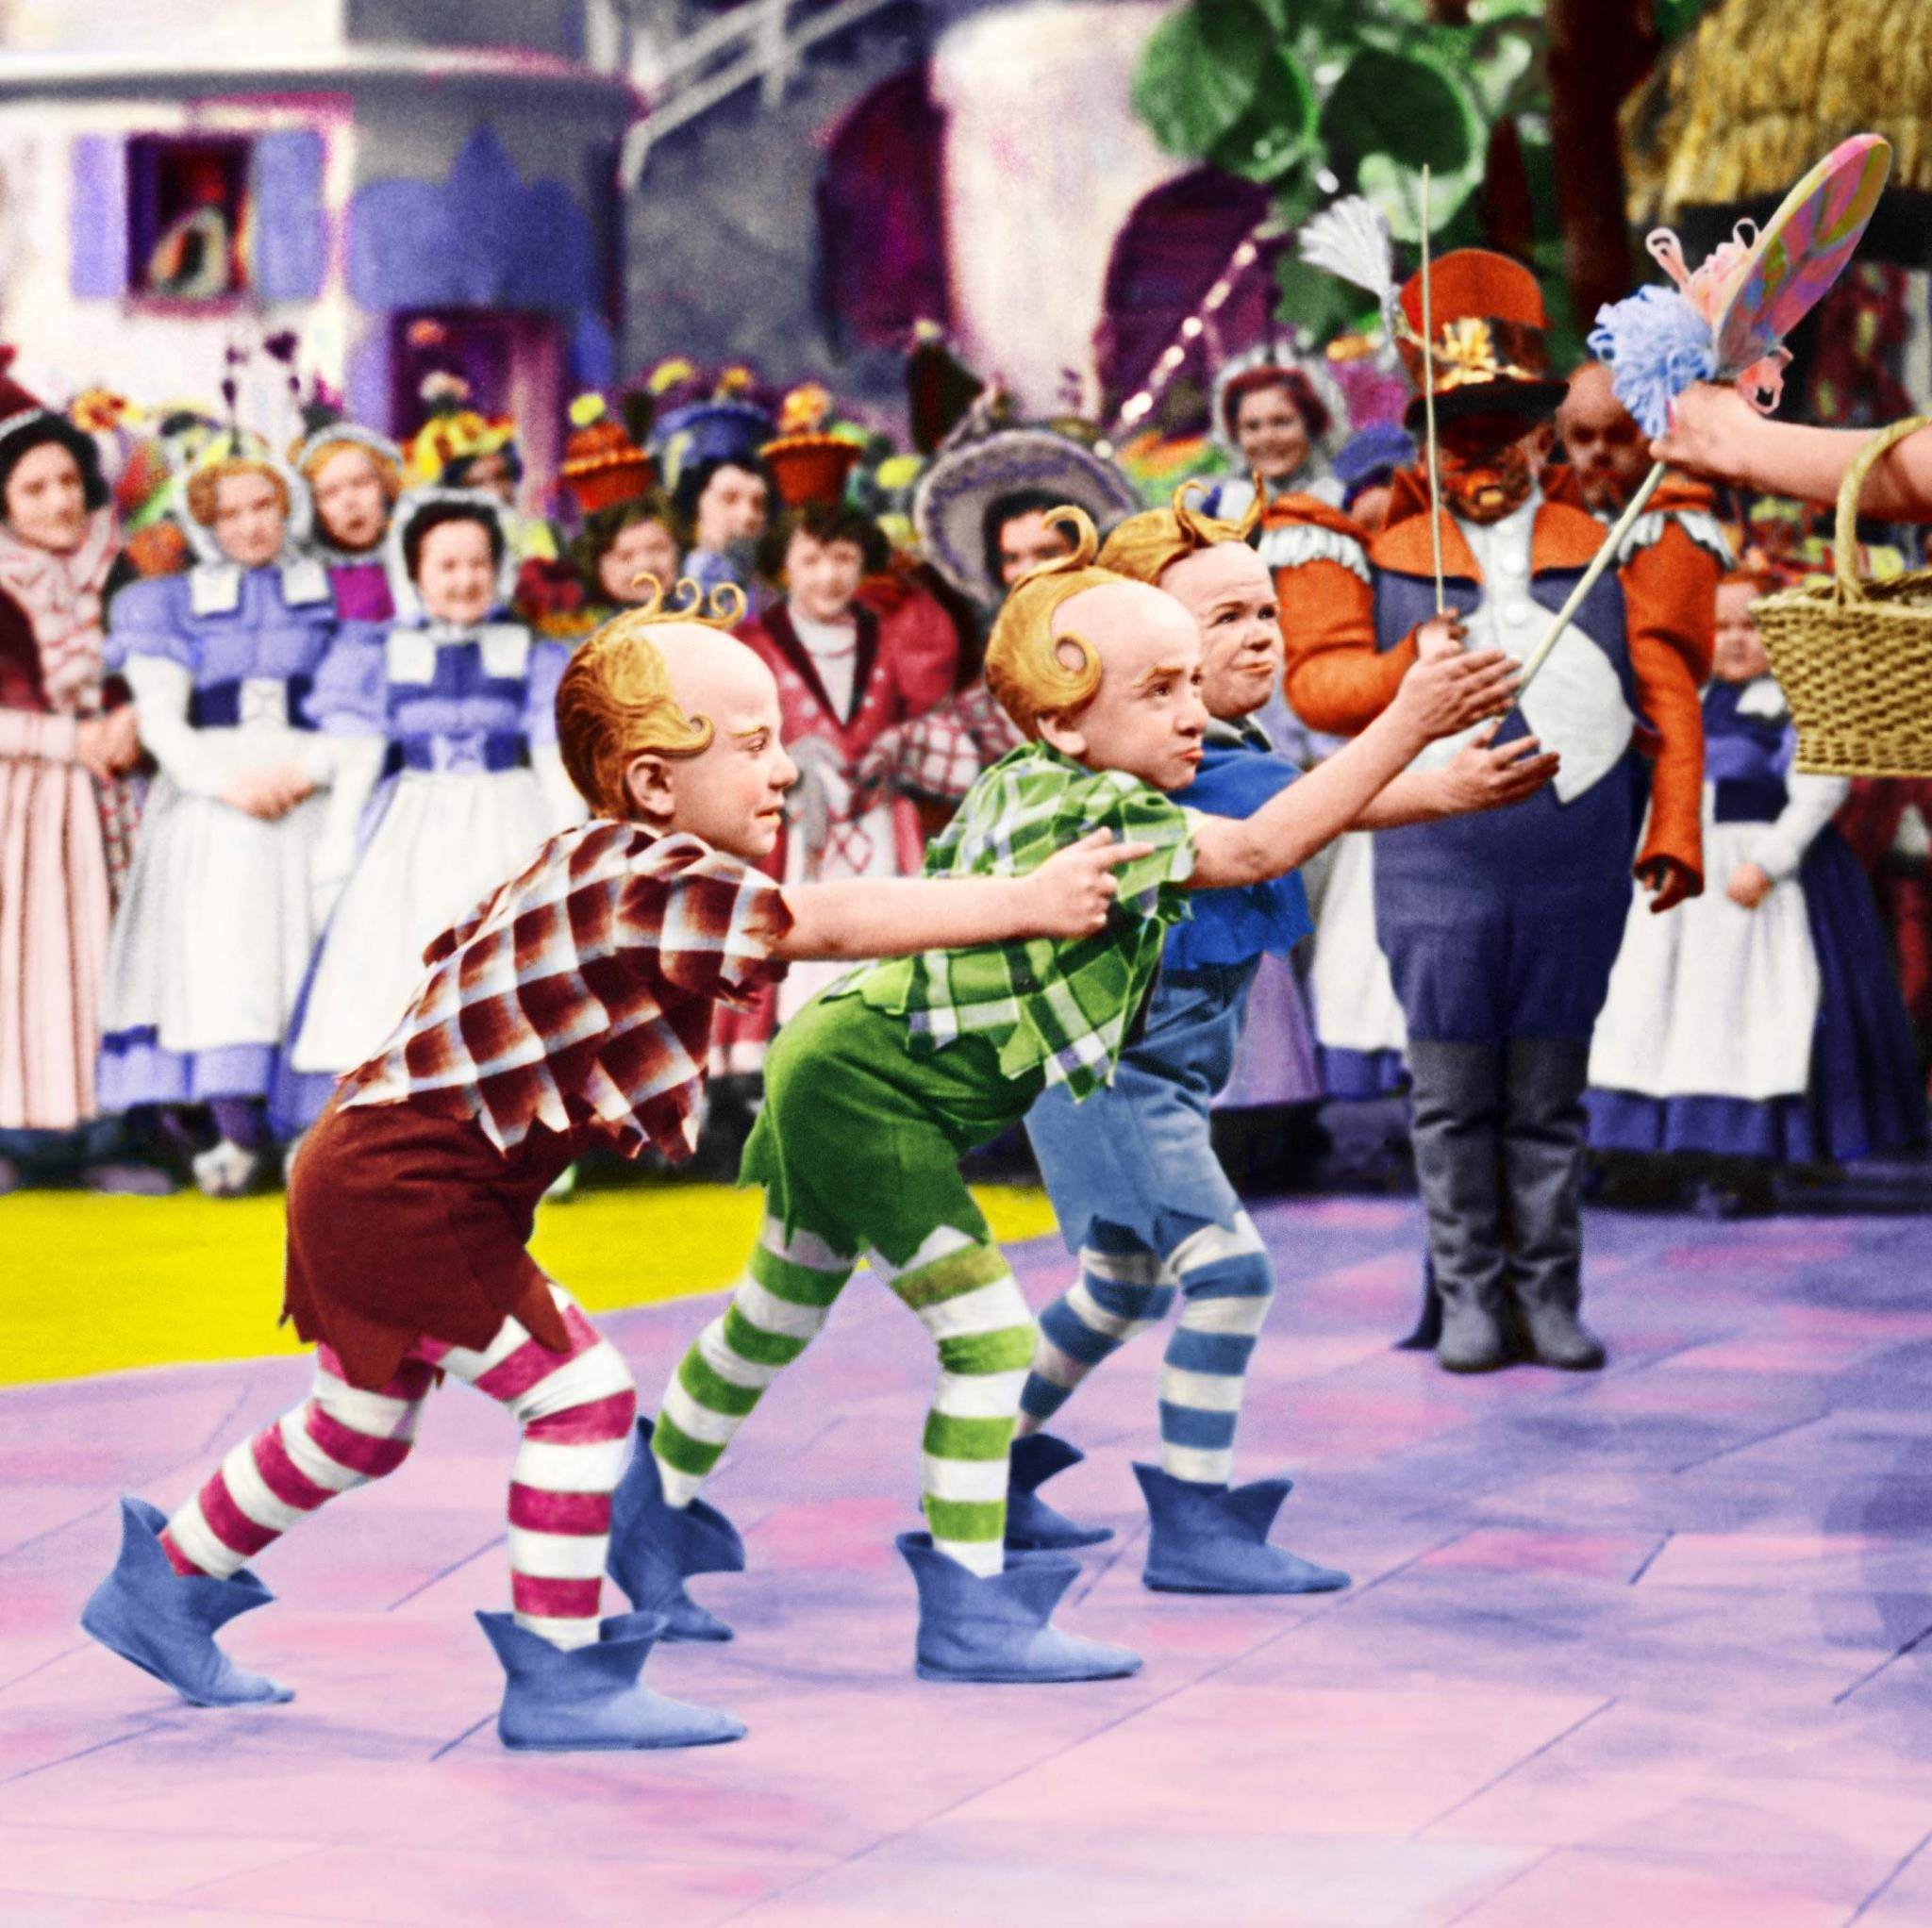 THE MUNCHKINS ~ The Wizard of Oz, 1939 | Fall Fun | Pinterest ...